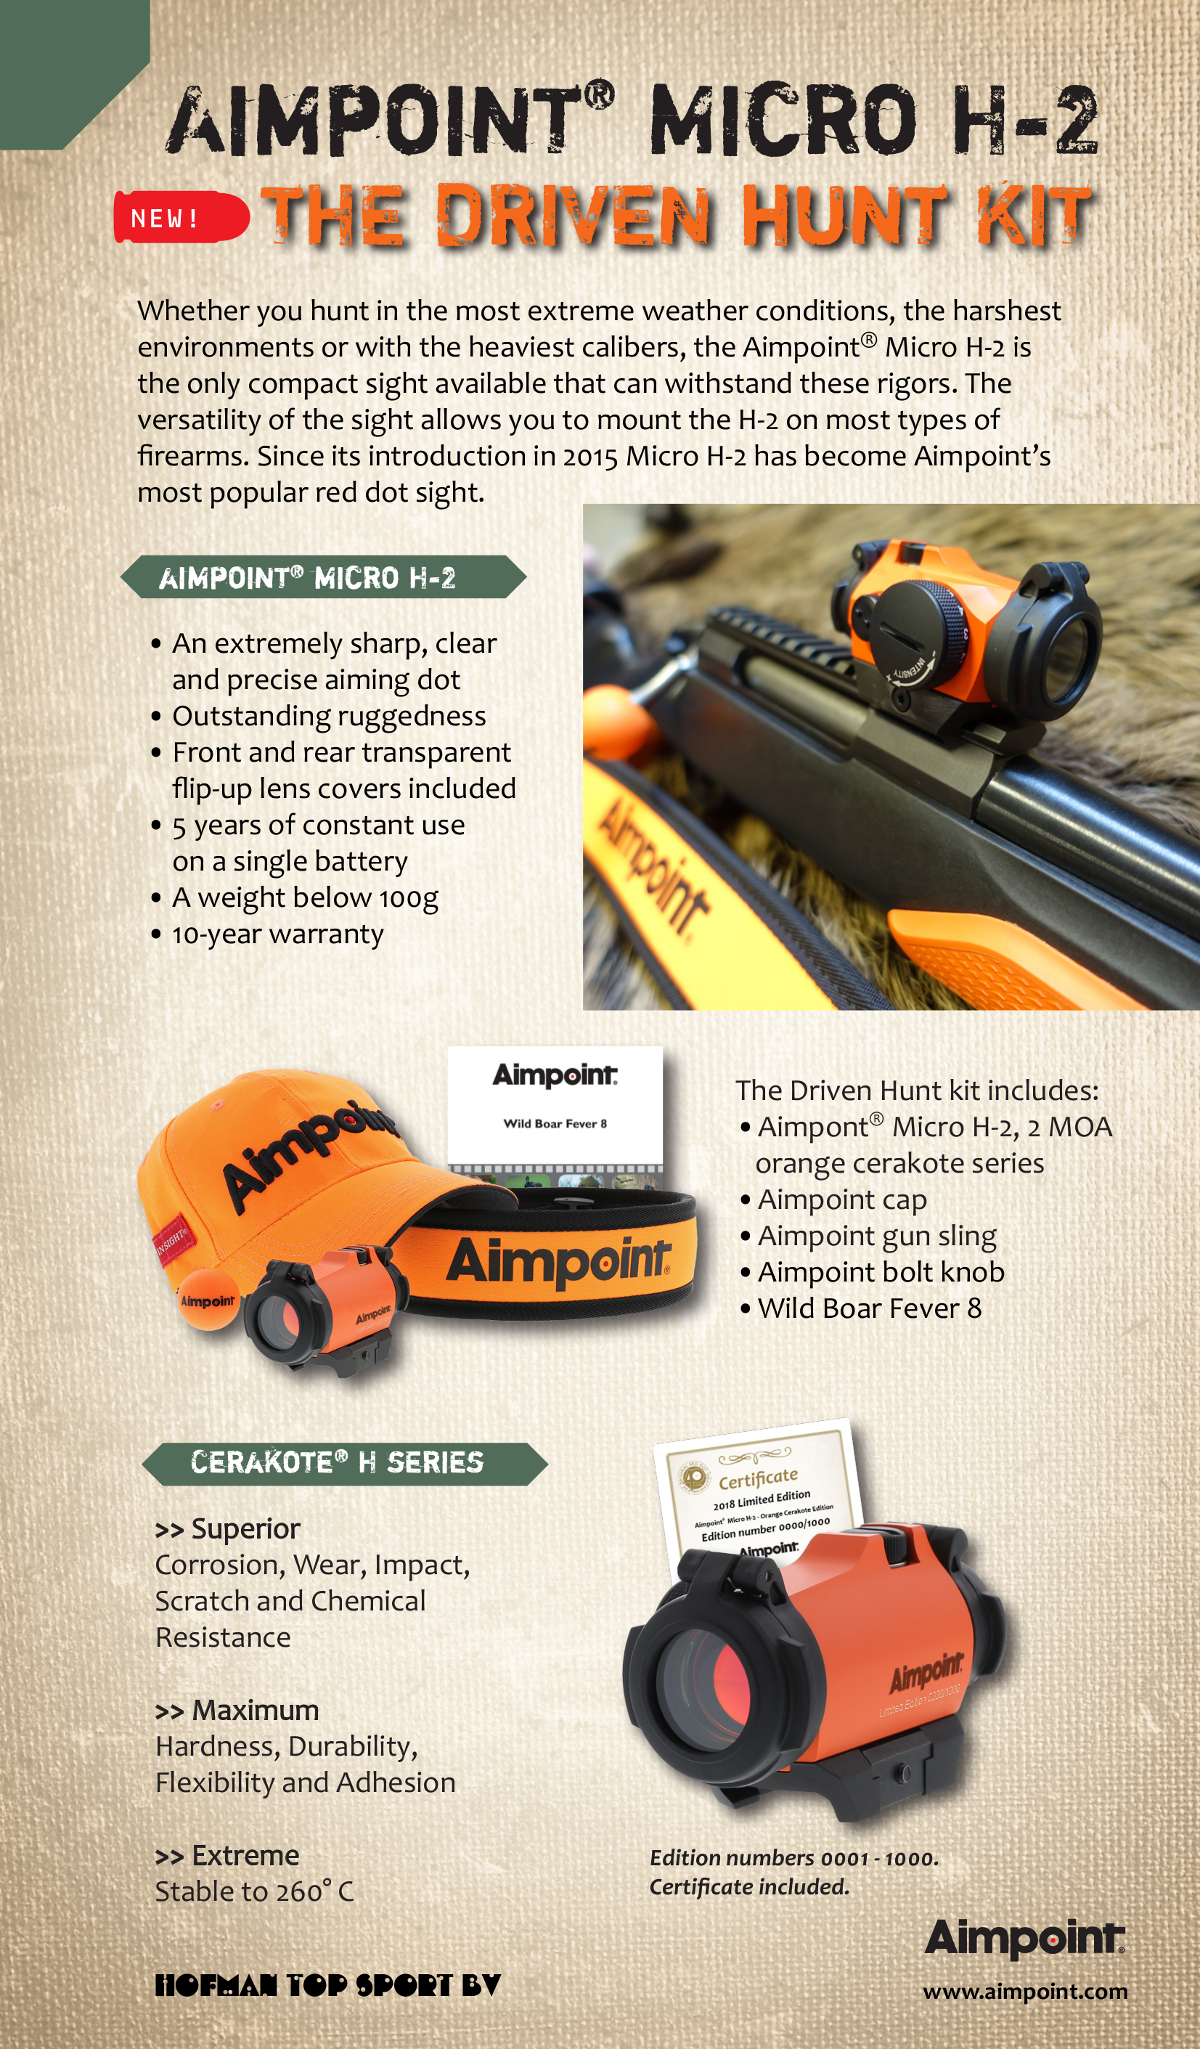 Aimpoint Driven Hunt Kit